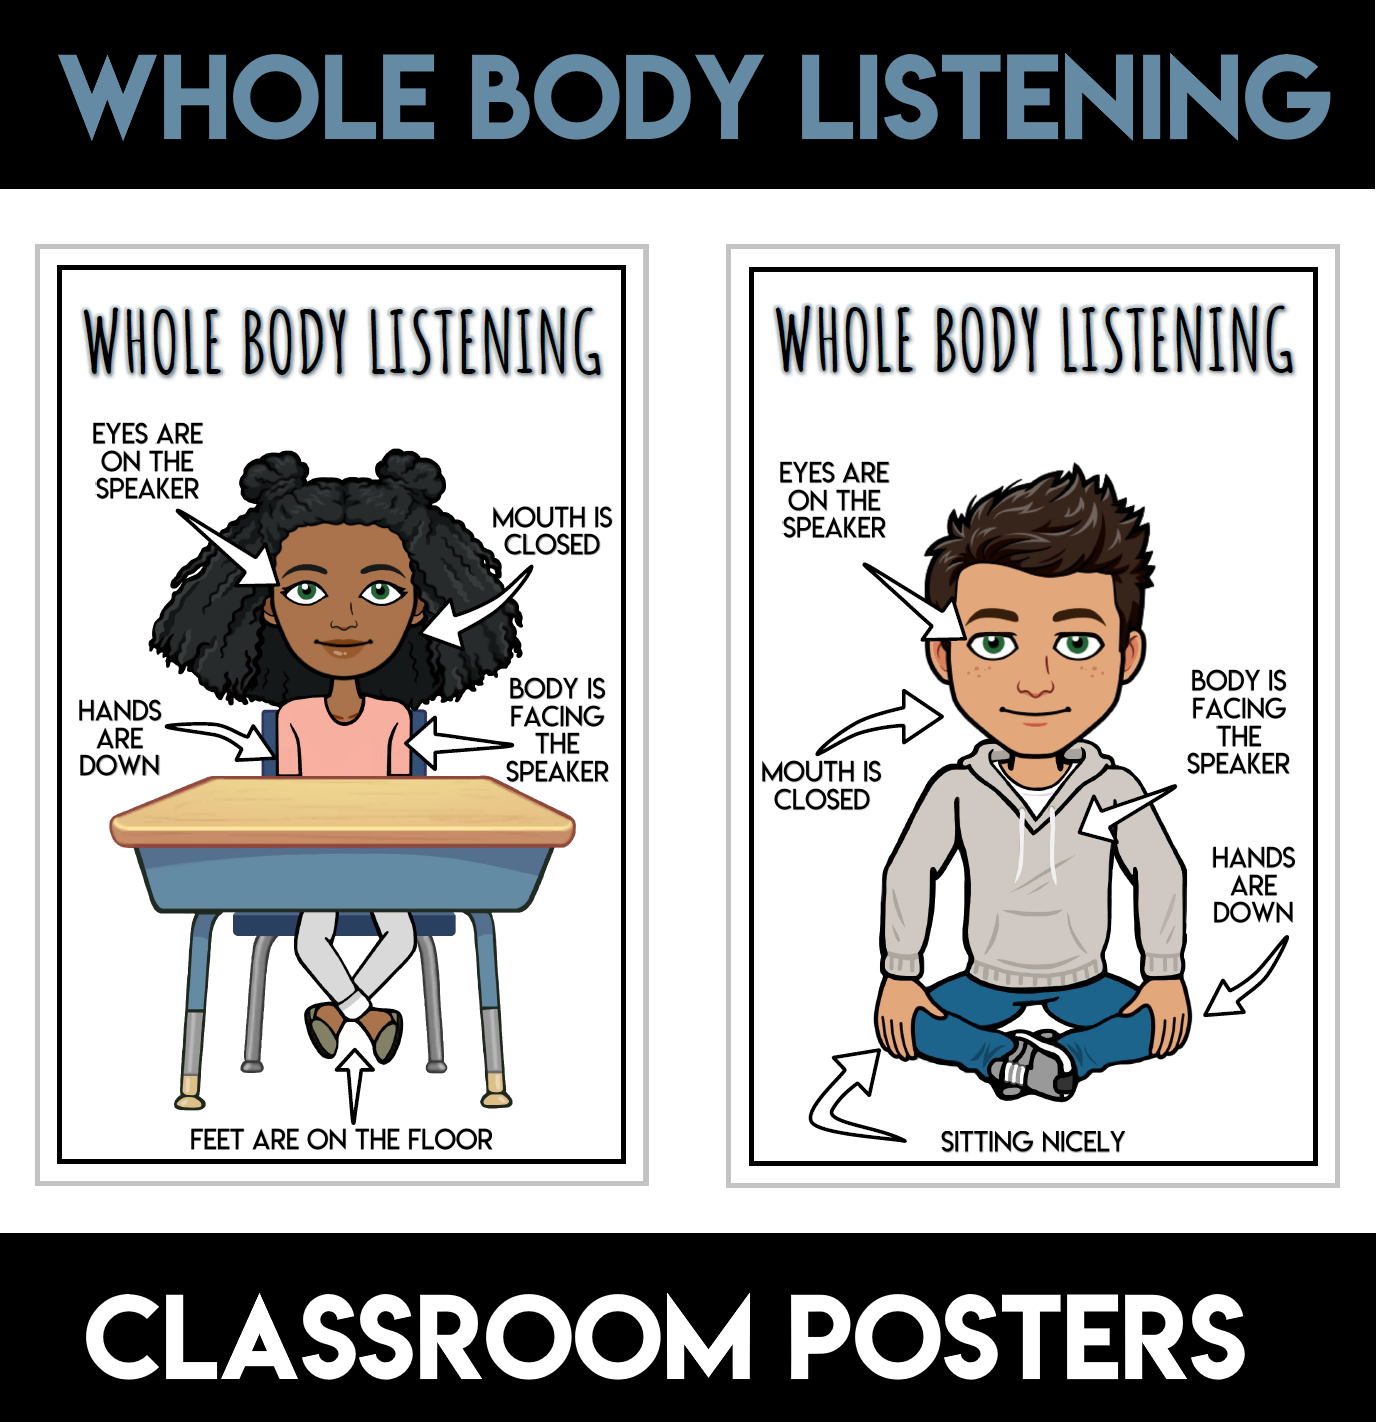 Whole Body Listening Posters With Images